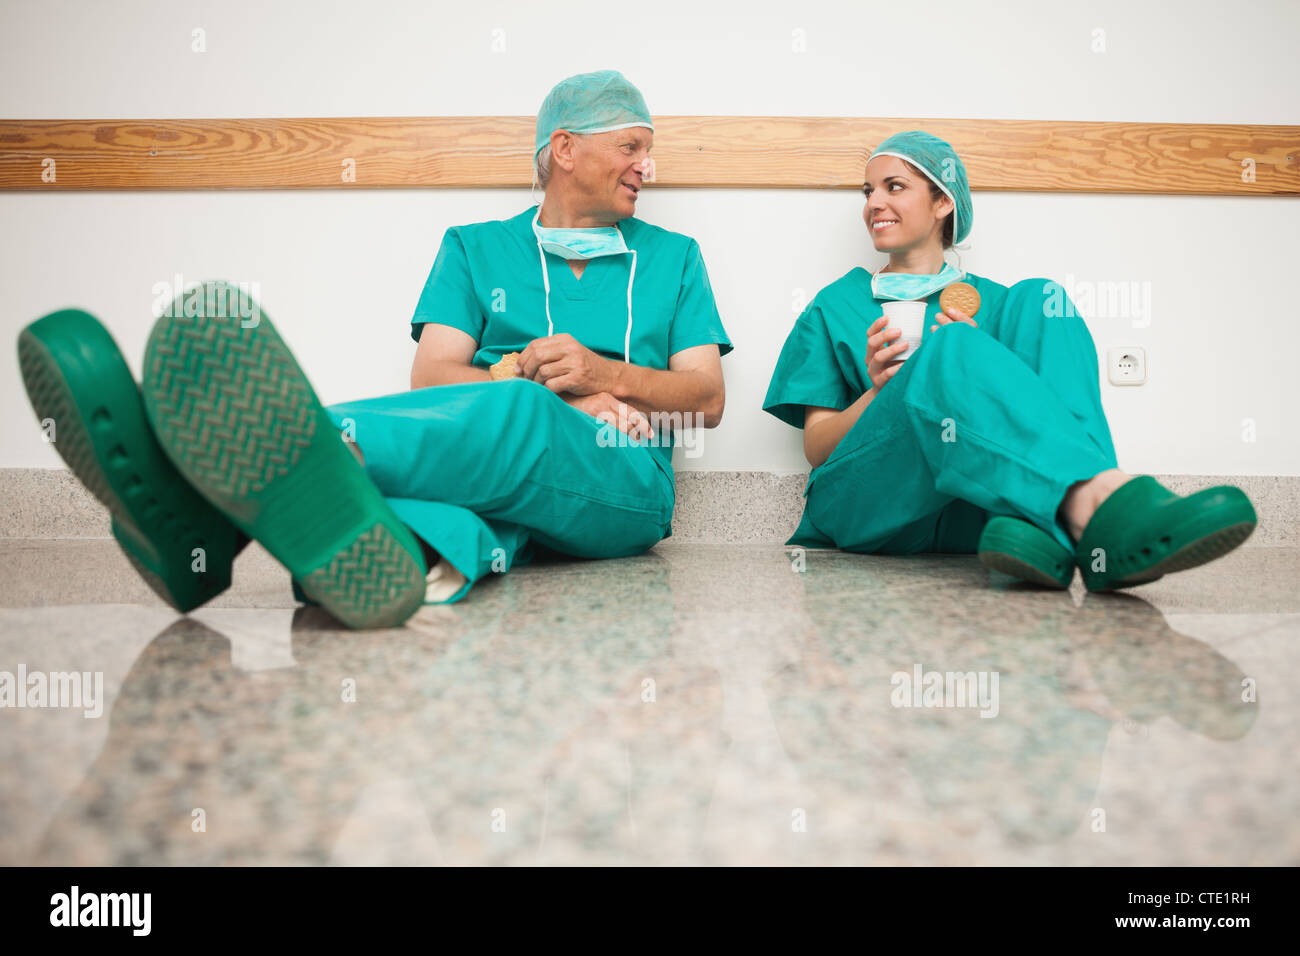 Surgeons talking while sitting in the floor - Stock Image